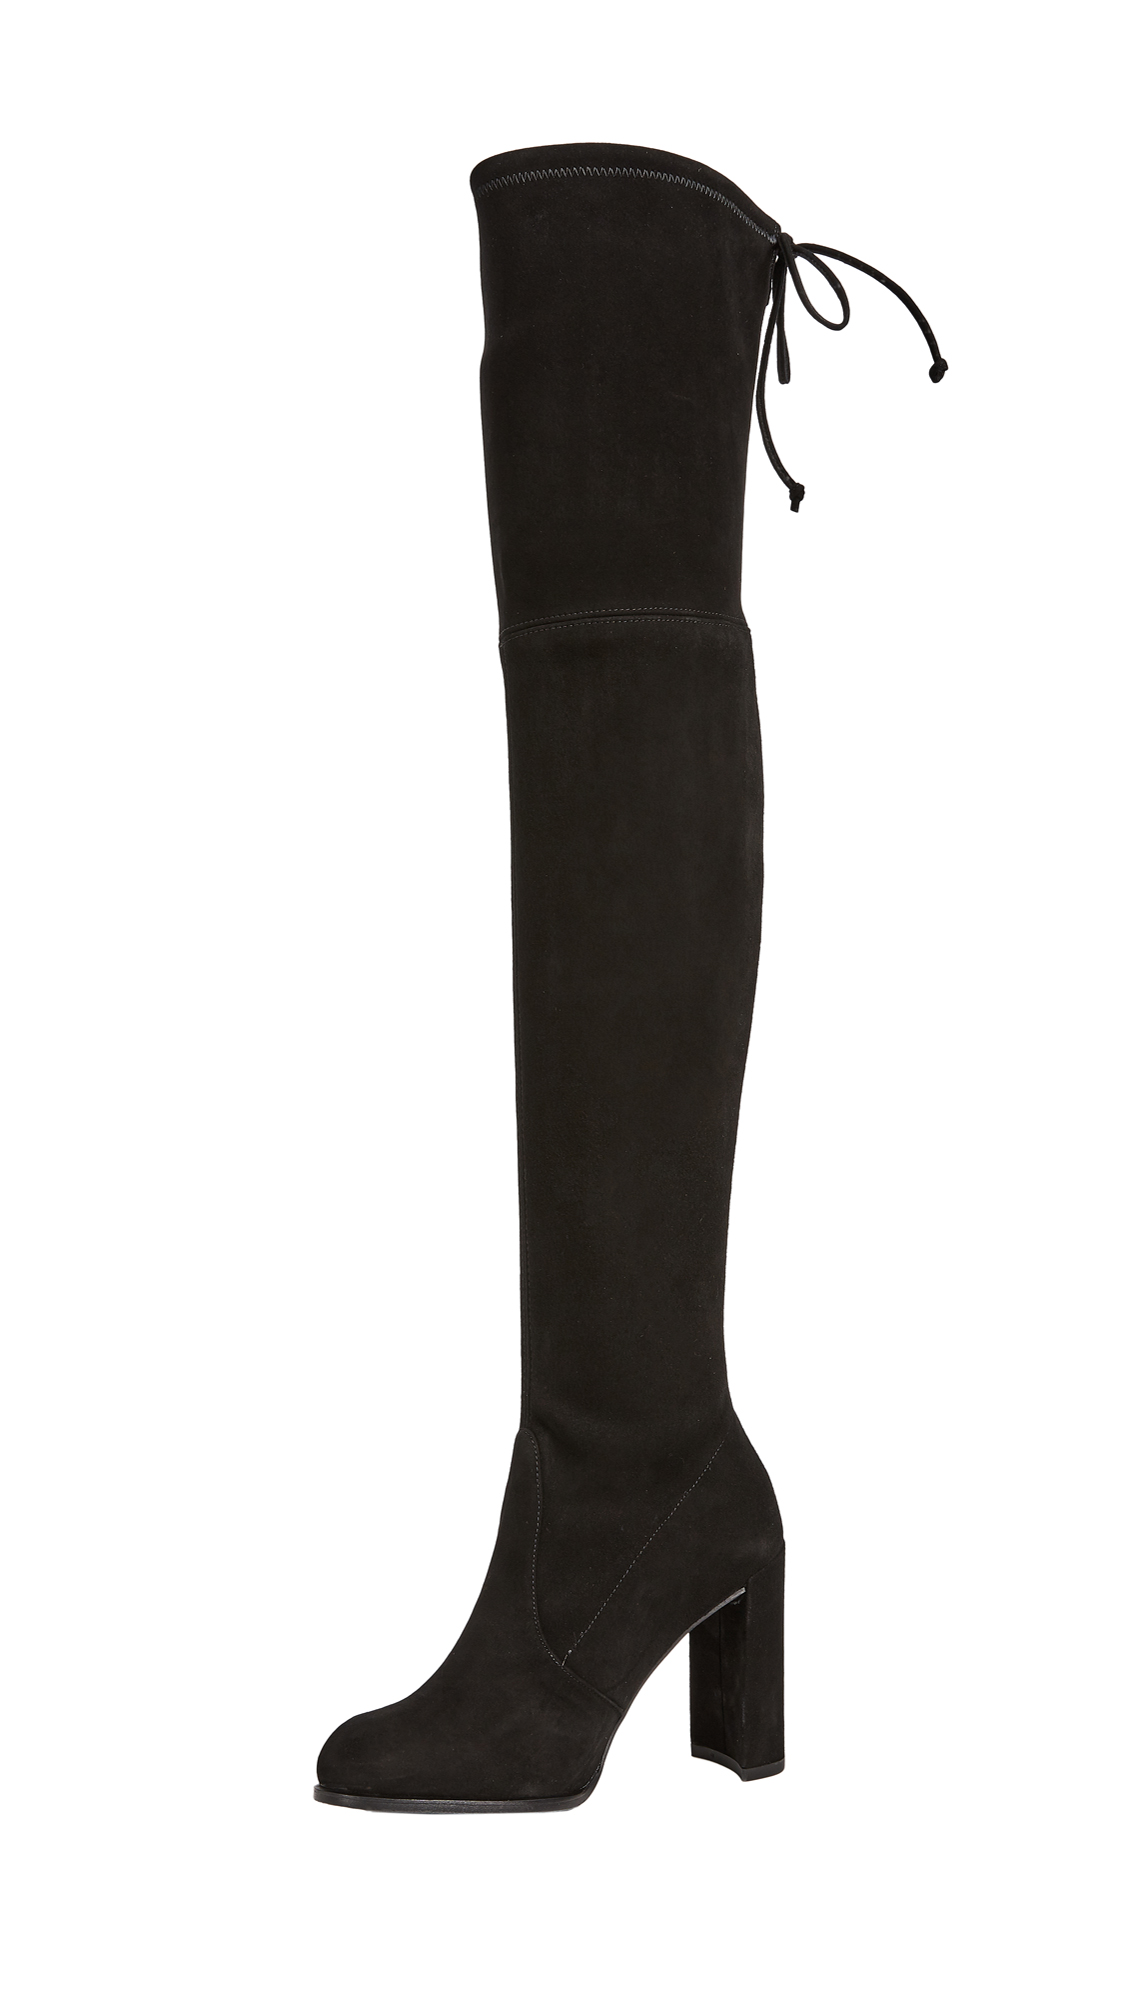 Stuart Weitzman Hiline Over the Knee Boots - Black